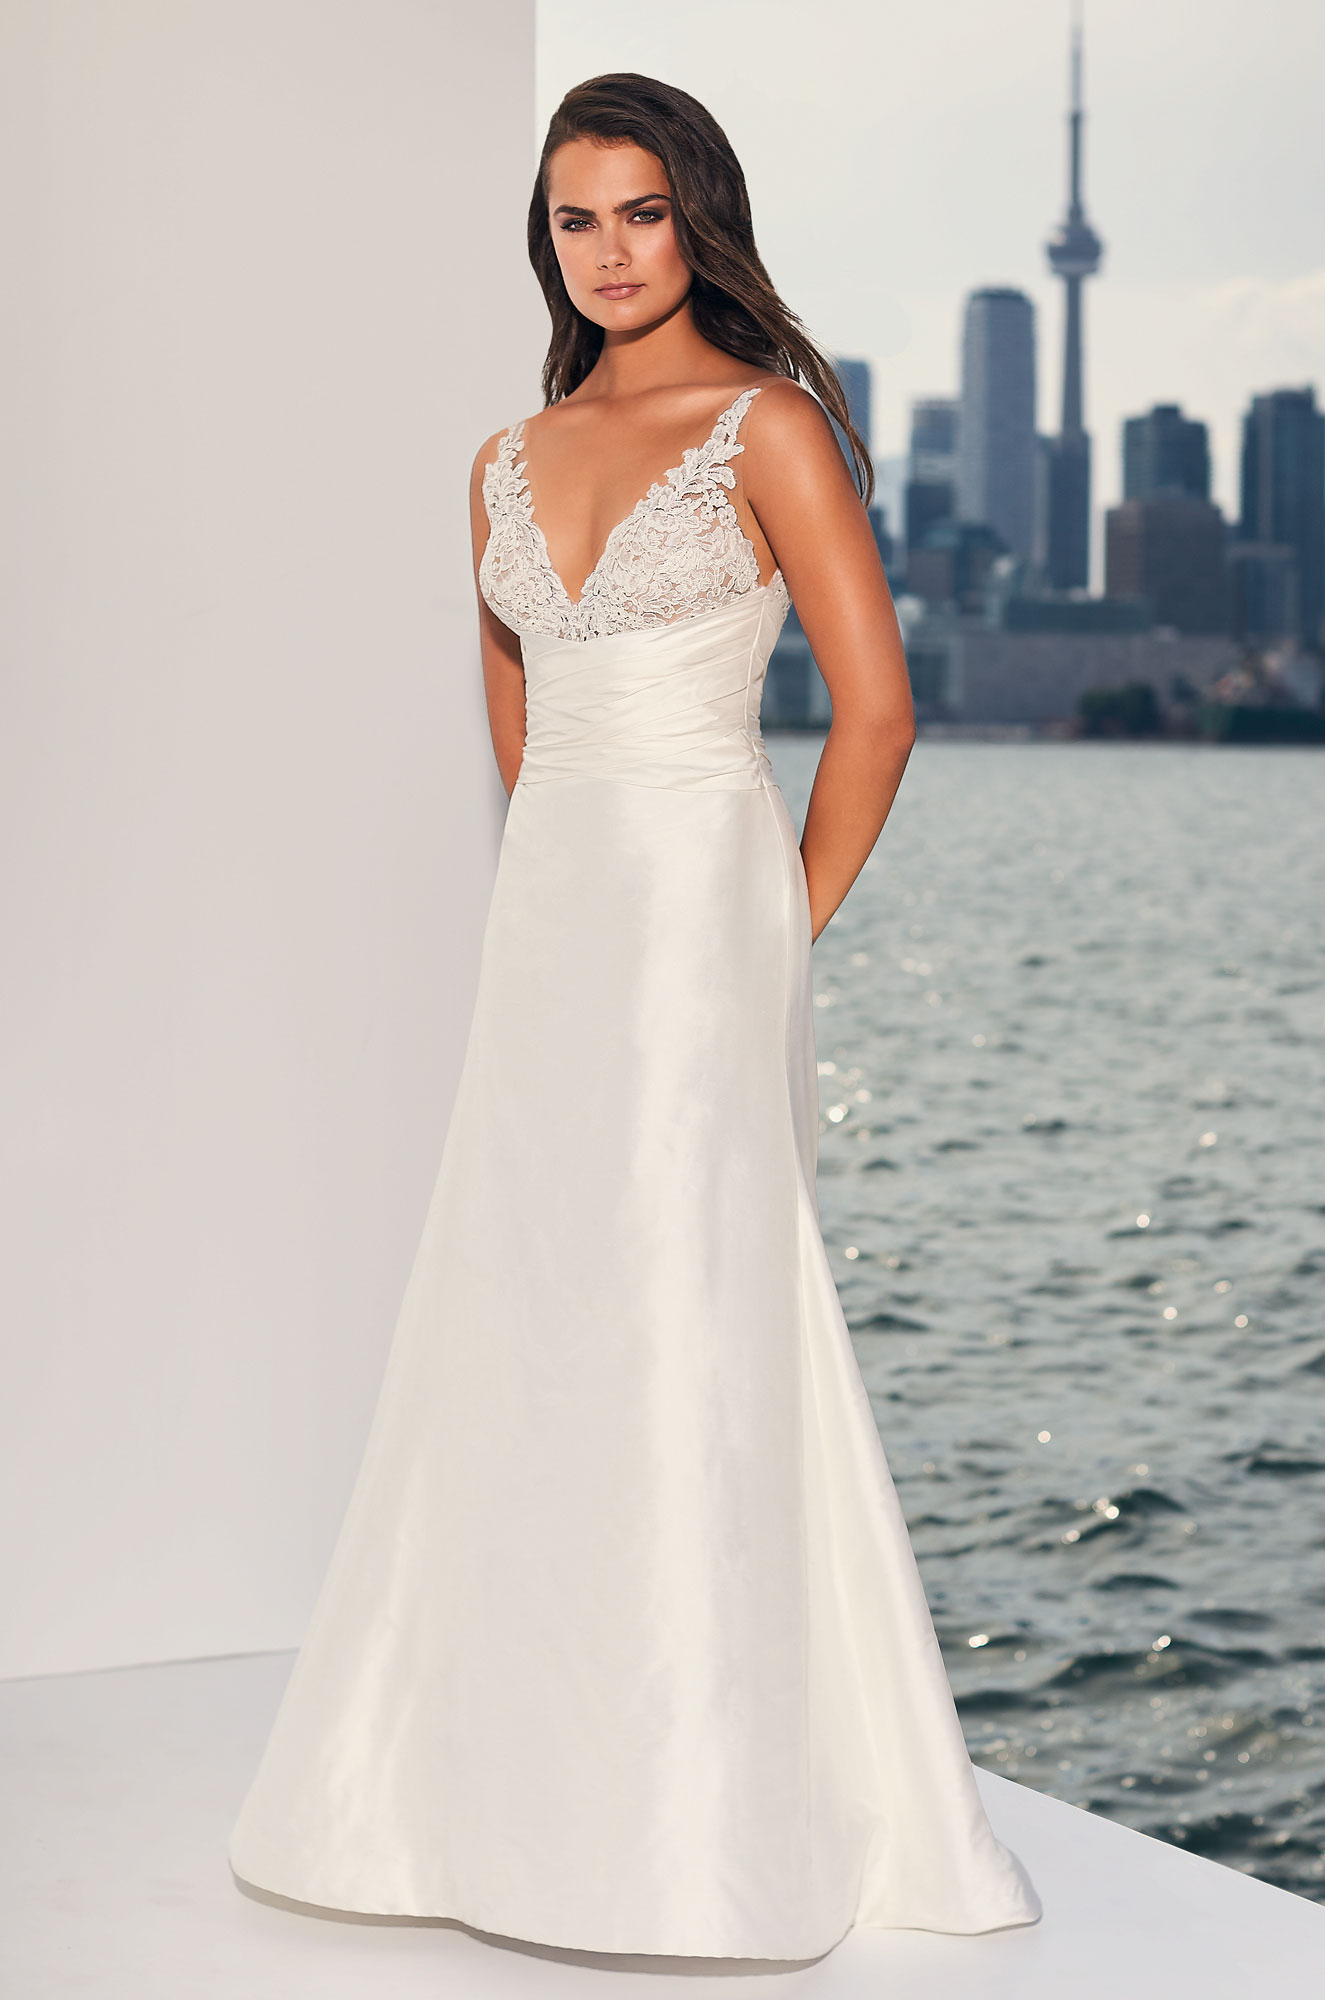 Ruched Midriff Silk Wedding Dress Style 4830 Paloma Blanca